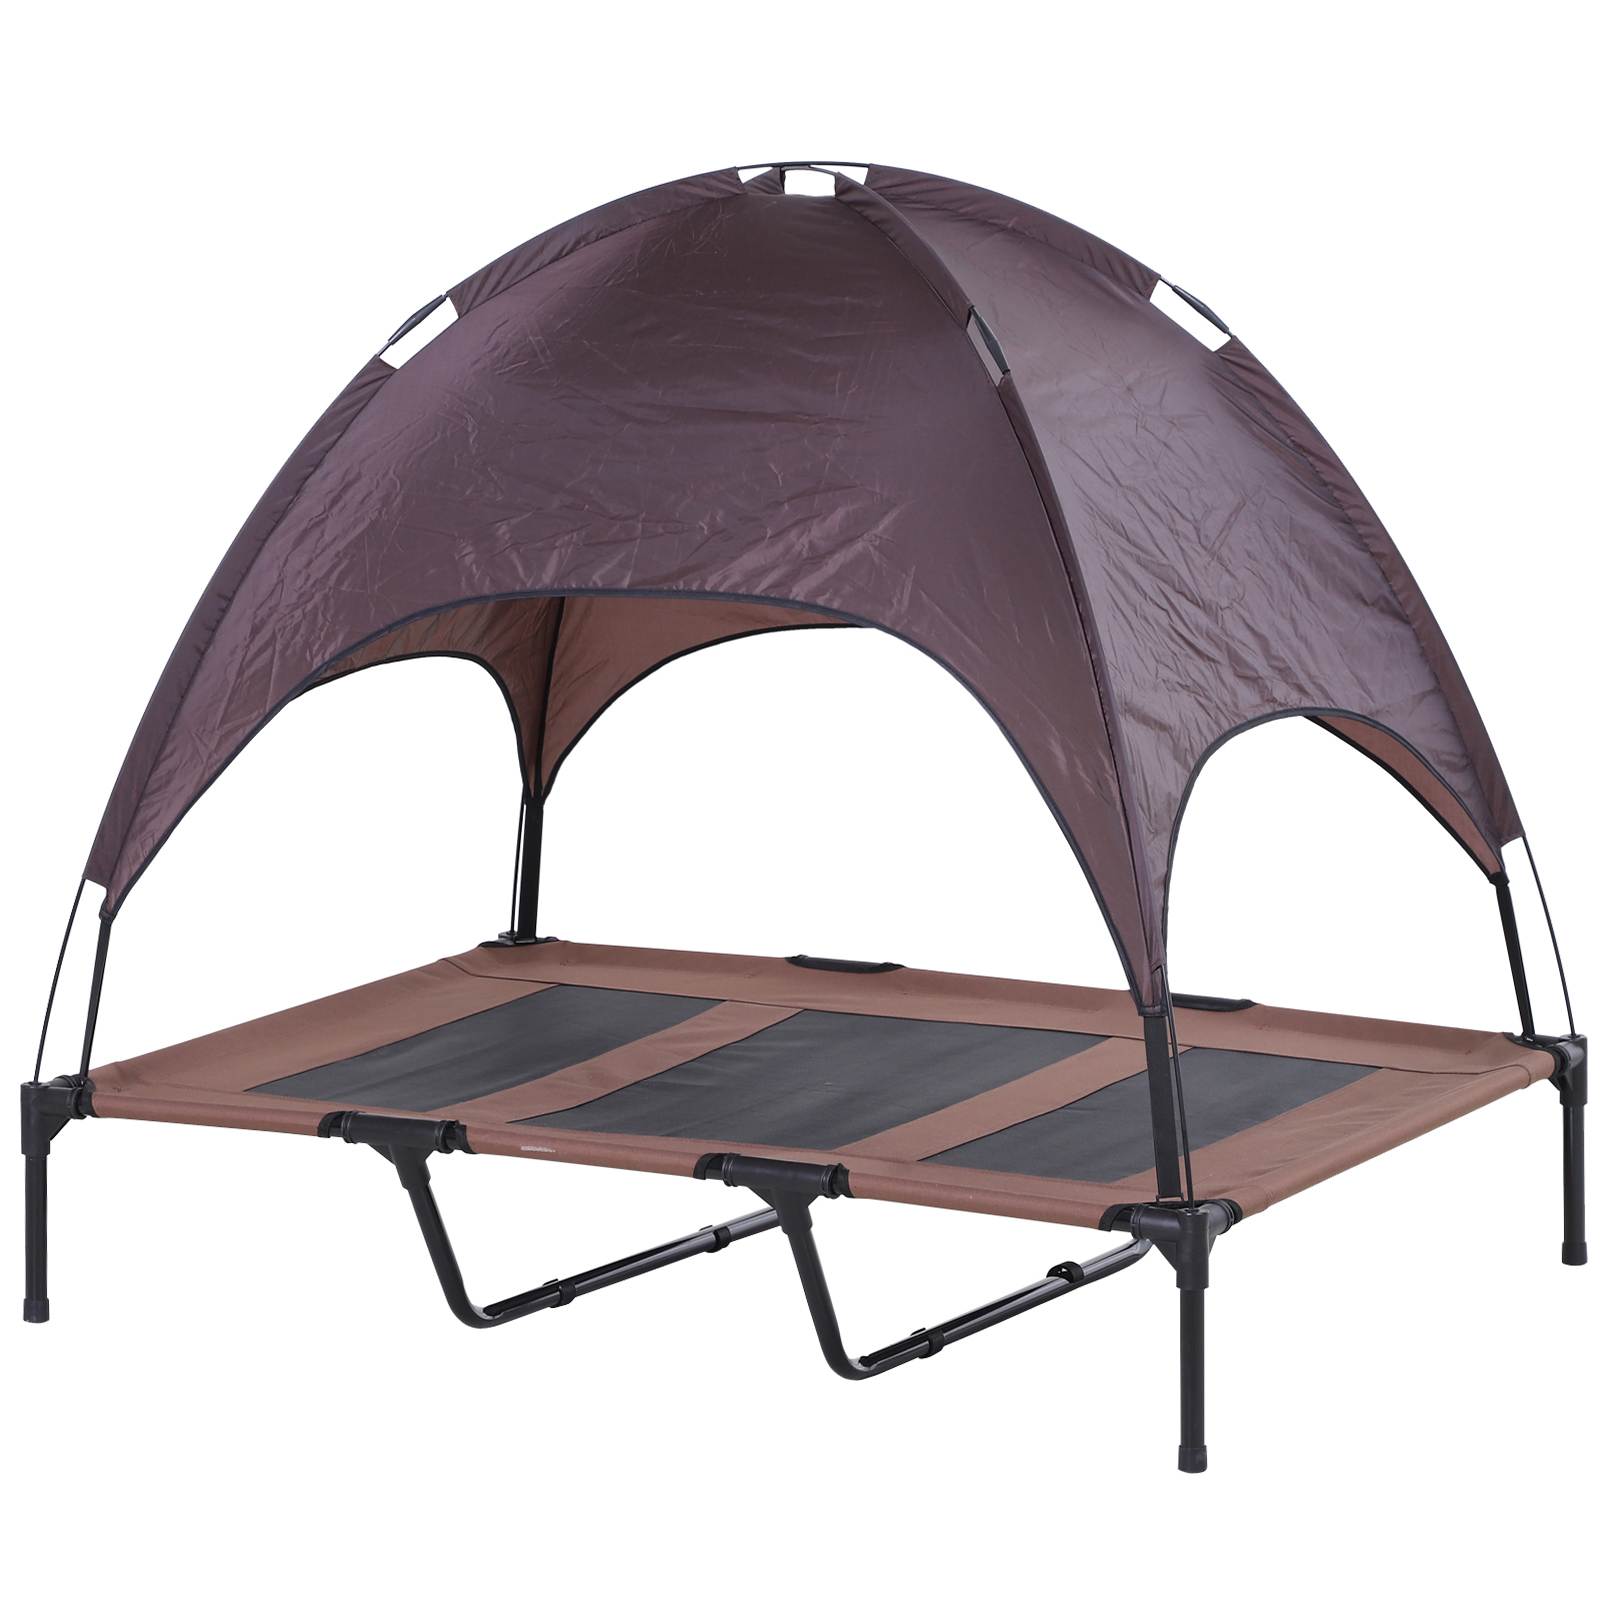 PawHut-Elevated-Pet-Bed-Dog-Foldable-Cot-Tent-Canopy thumbnail 10